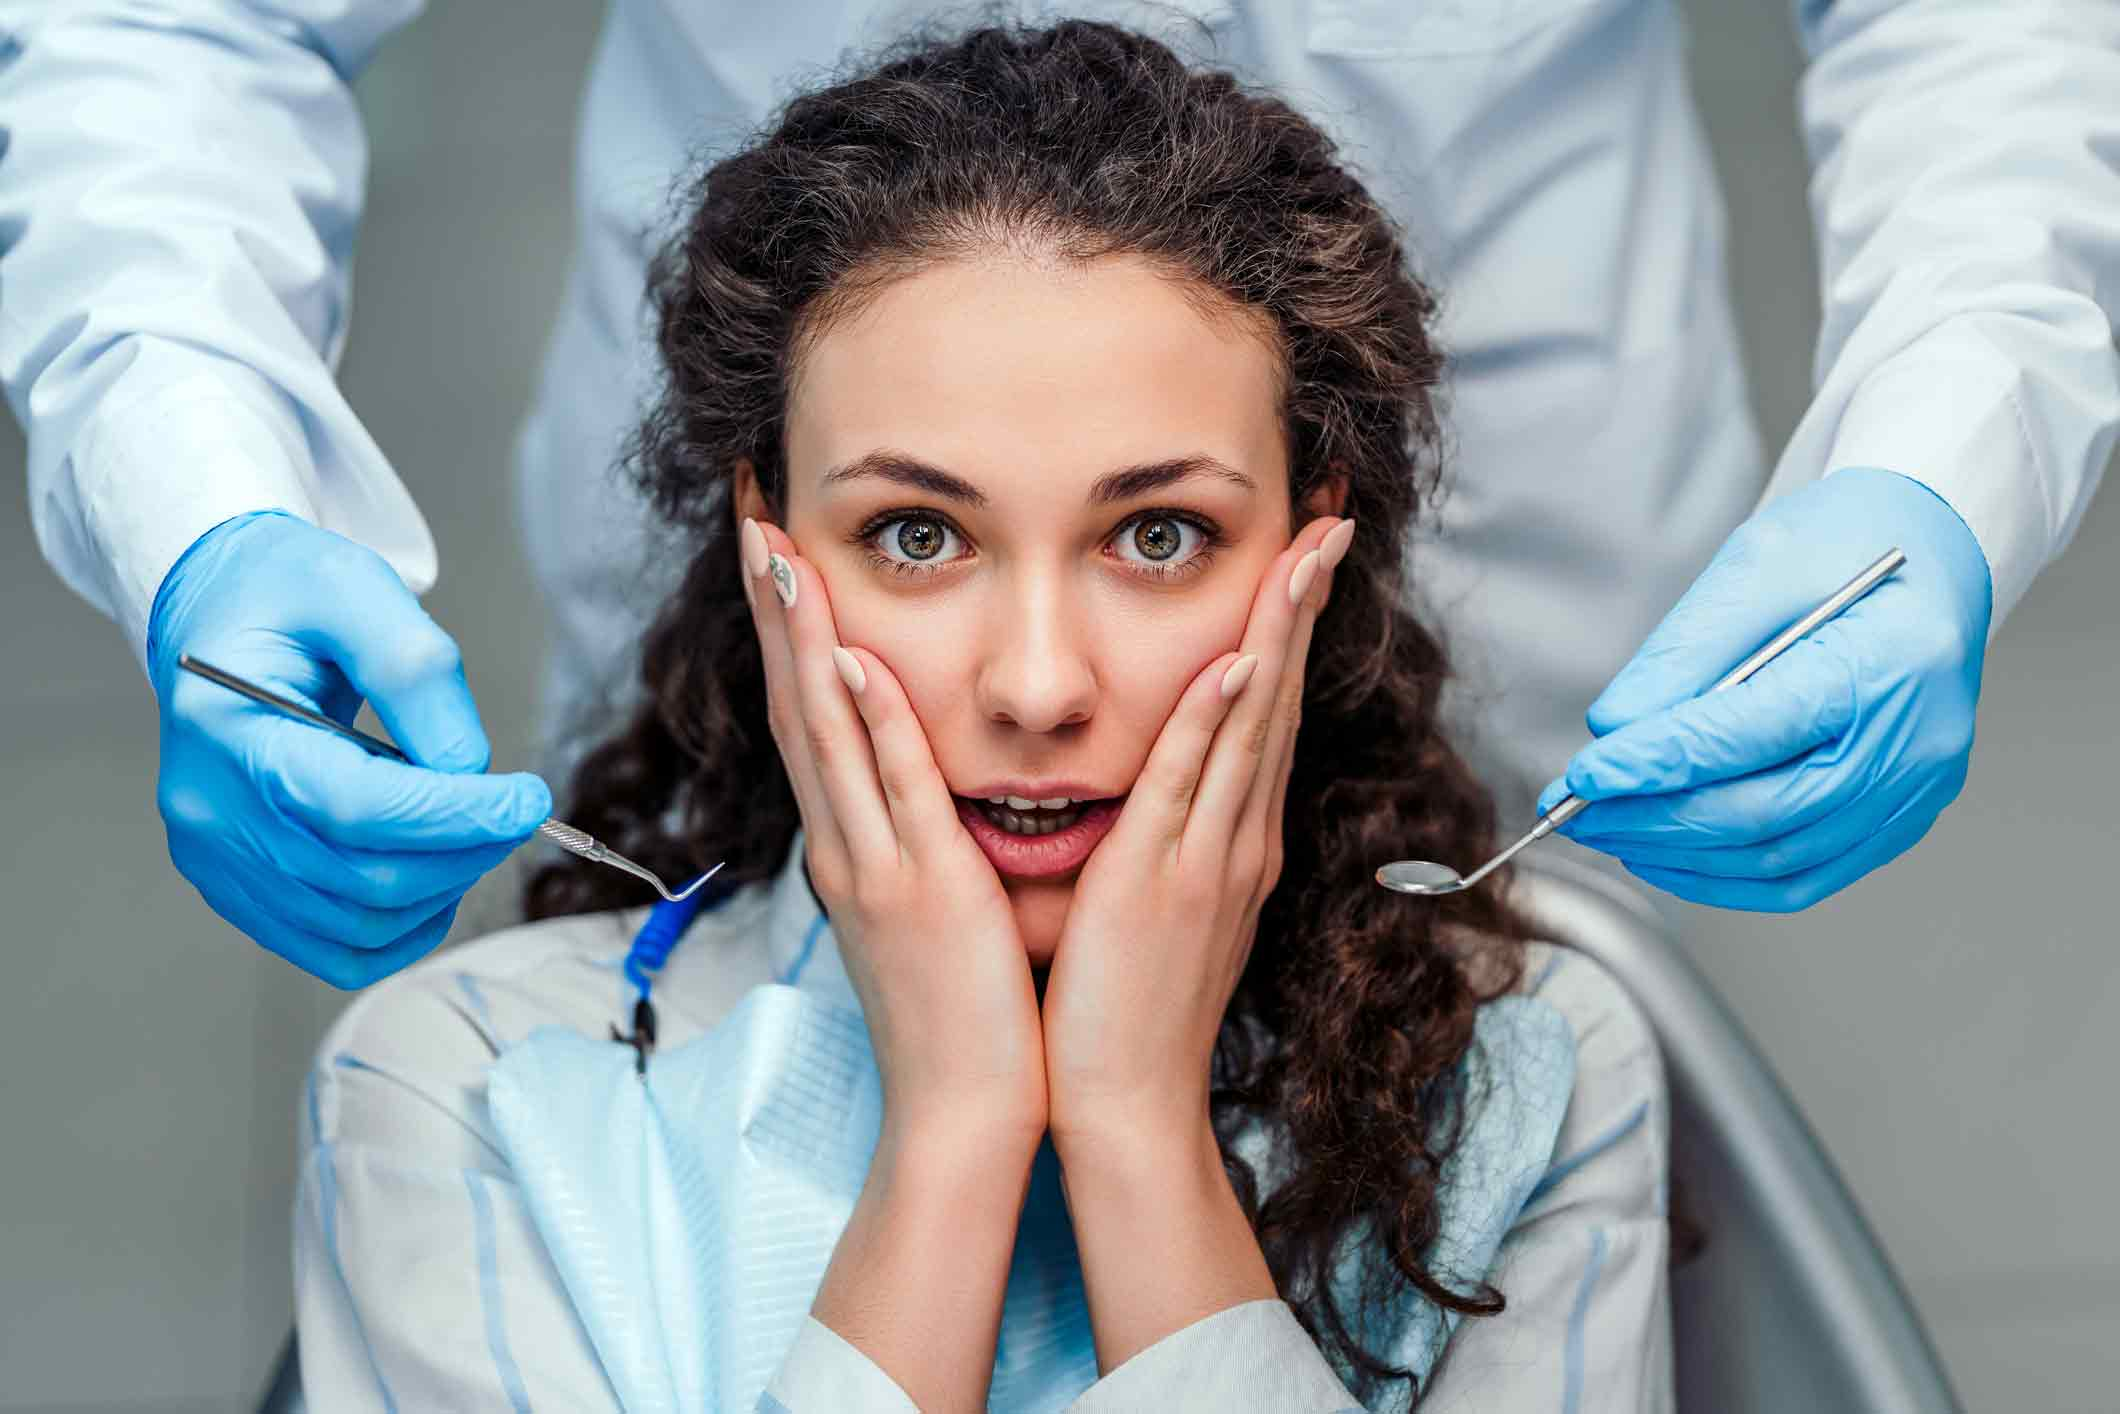 Top Tips To Help With Anxiety Before Oral Surgery